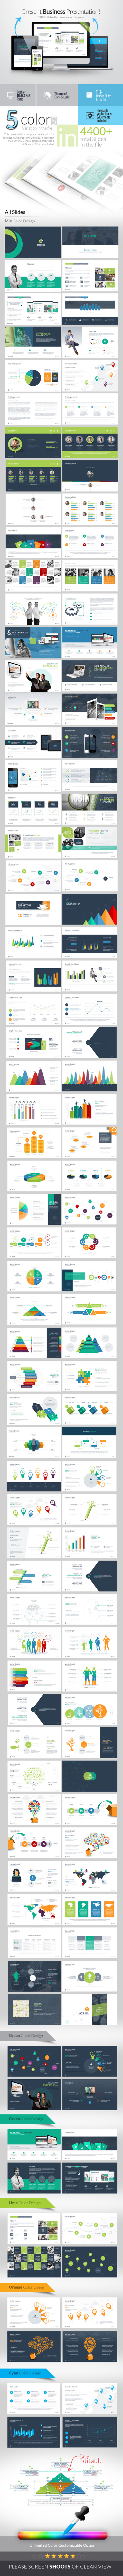 GraphicRiver Cresent Multipurpose Development Powerpoint 10377243